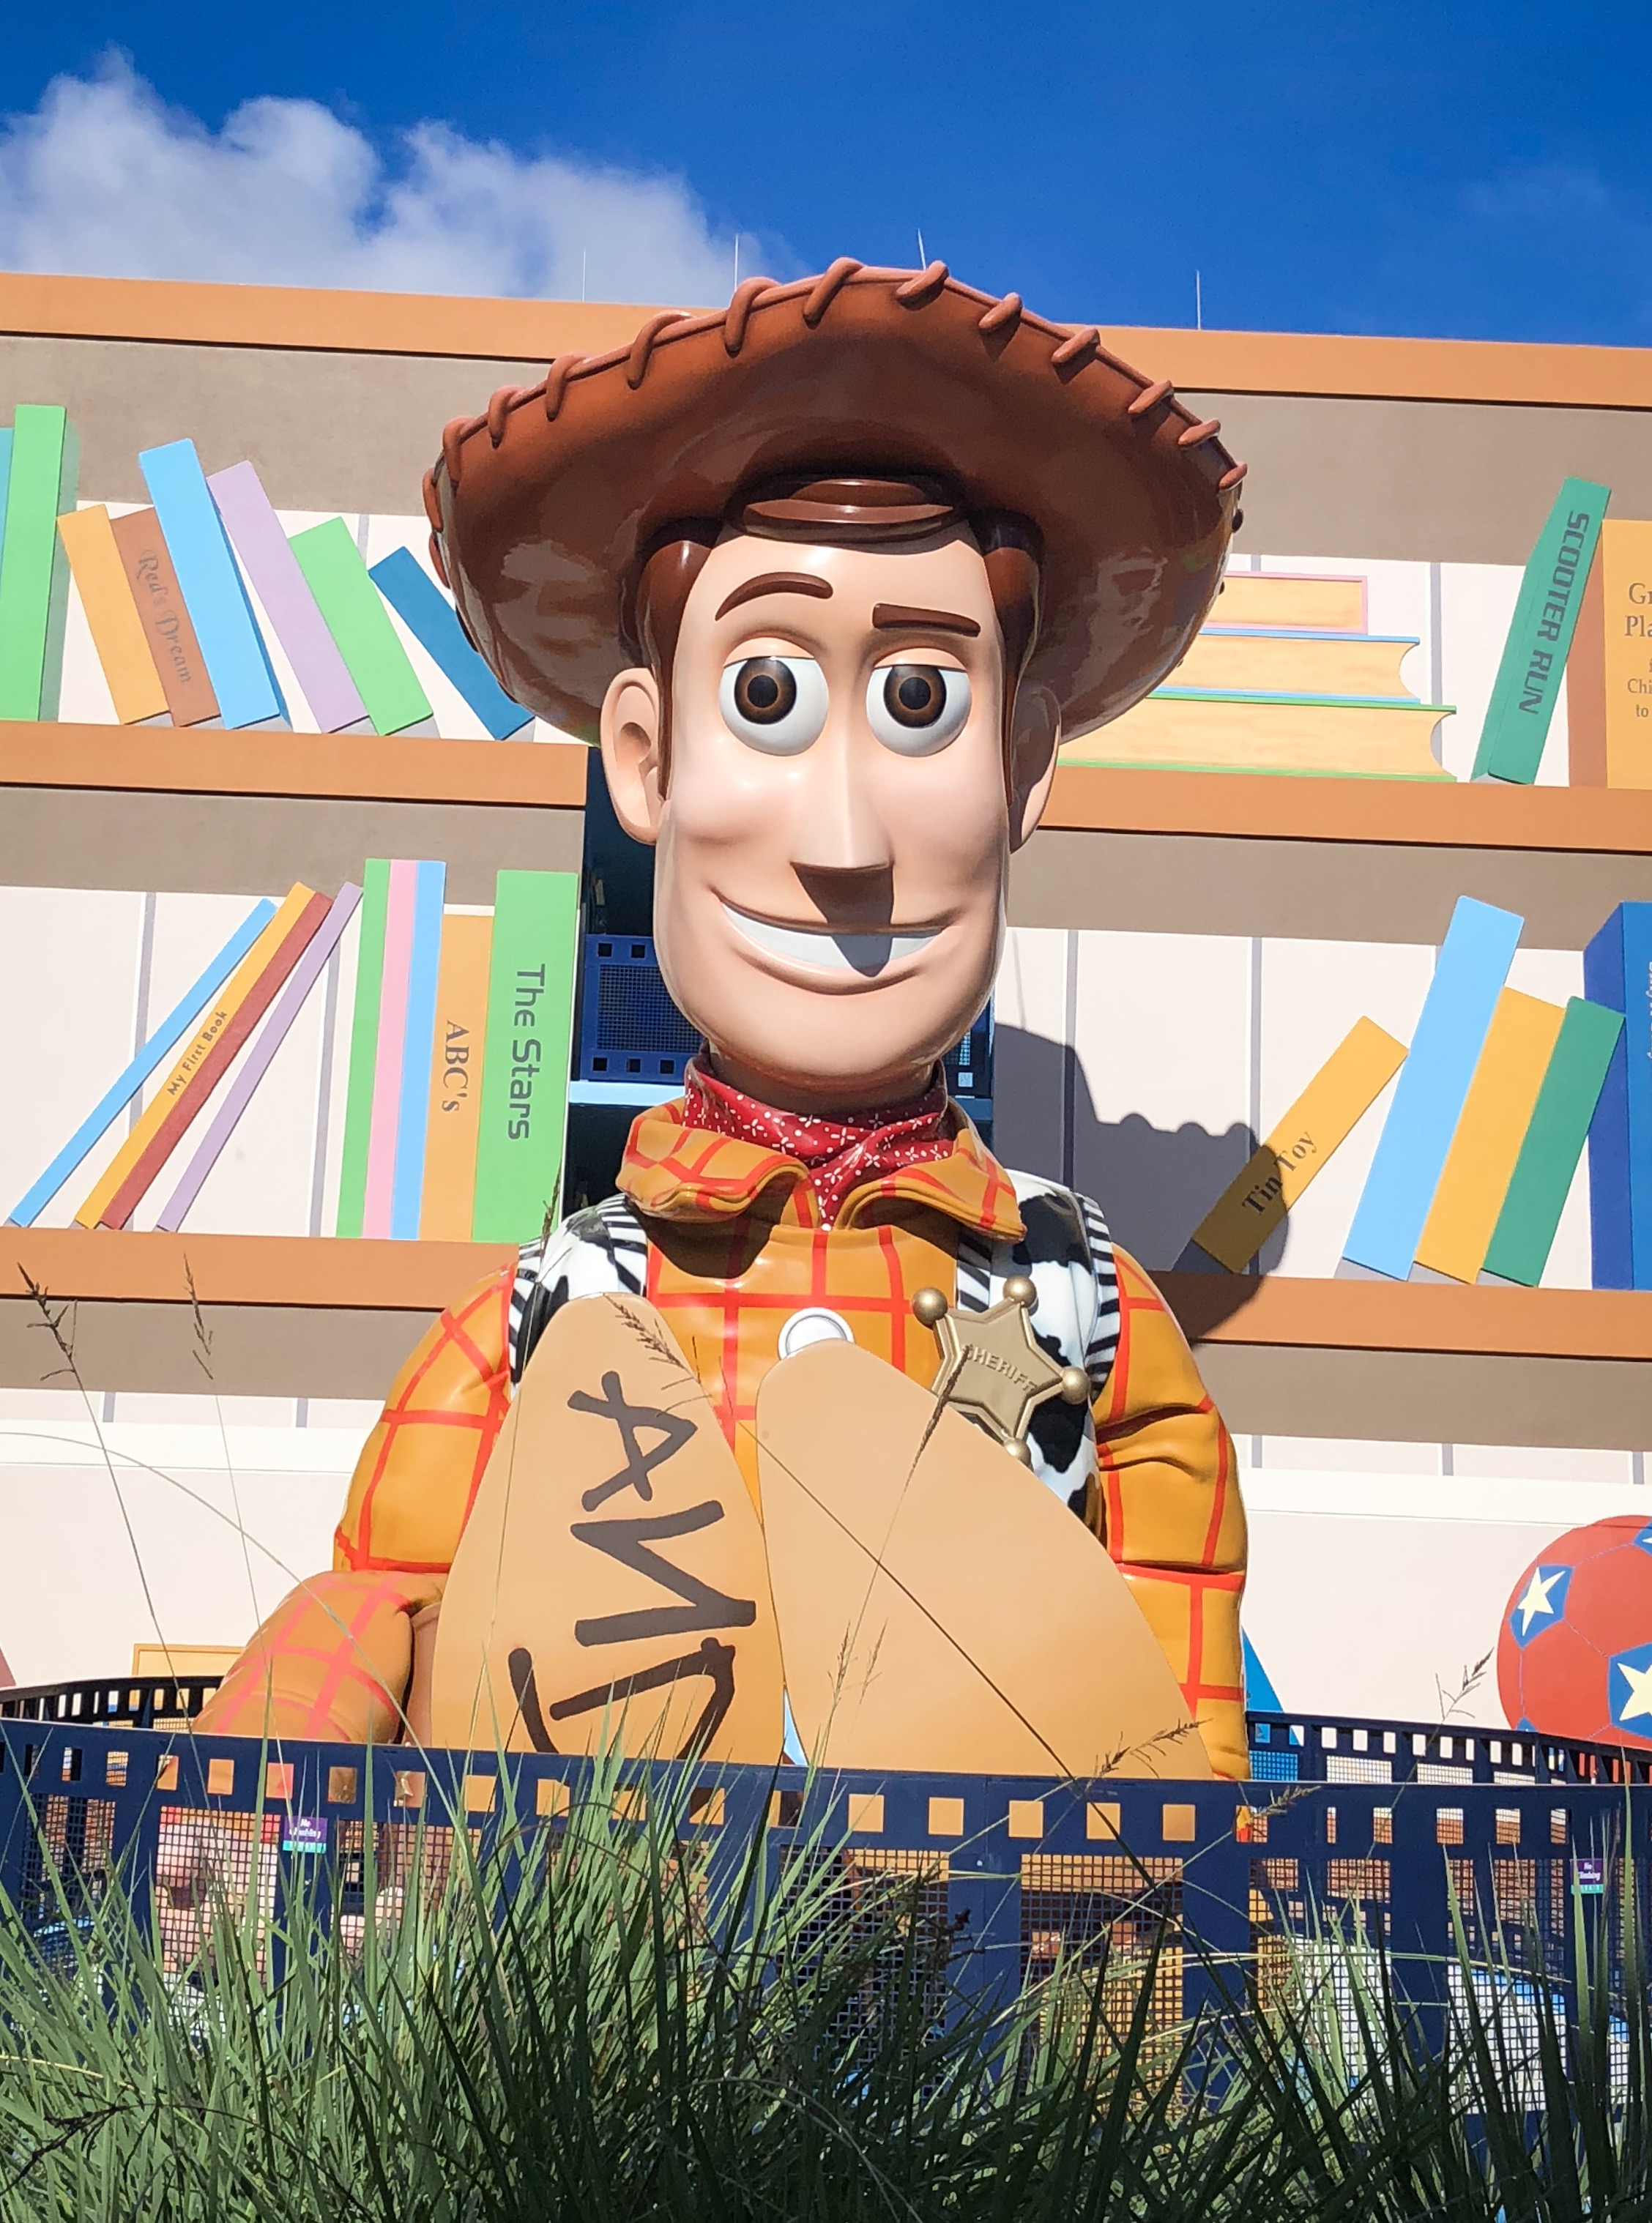 Gigantic Woody toy statue sitting in front of bookshelf